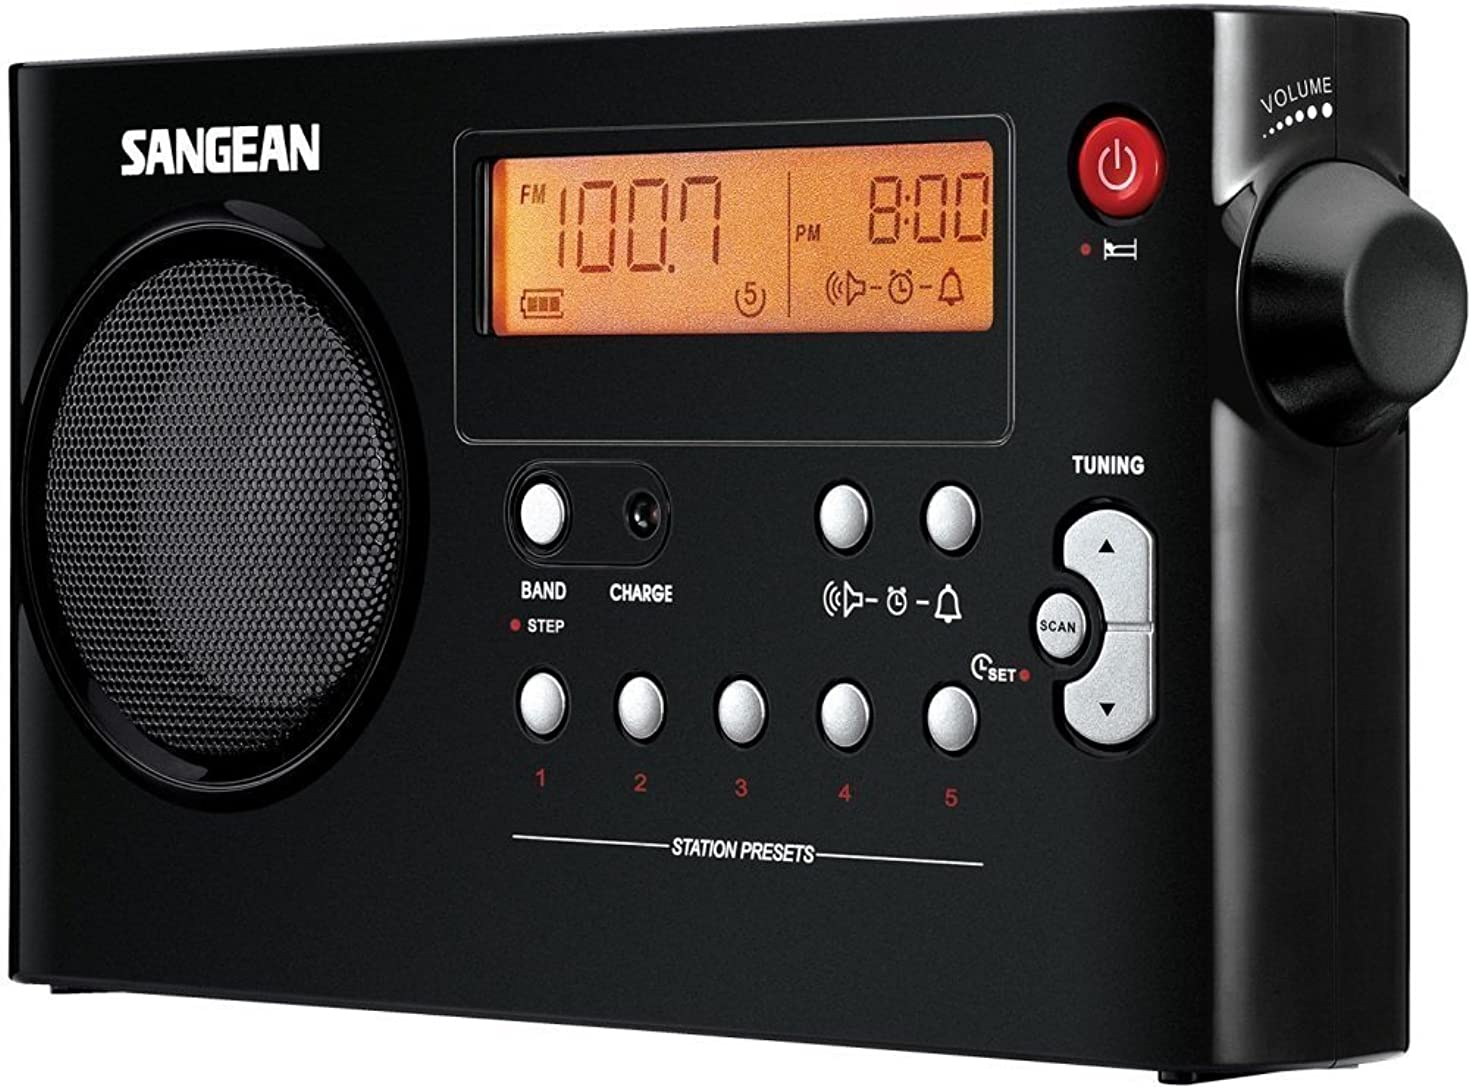 Sangean PR-D7BK FM/AM Compact Digital Tuning Portable Receiver, Black, 10 Memory Preset Stations (5 FM/5 AM), Powered by Both Rechargeable and Dry Cell Batteries, Rechargeable with Battery Power Indicator